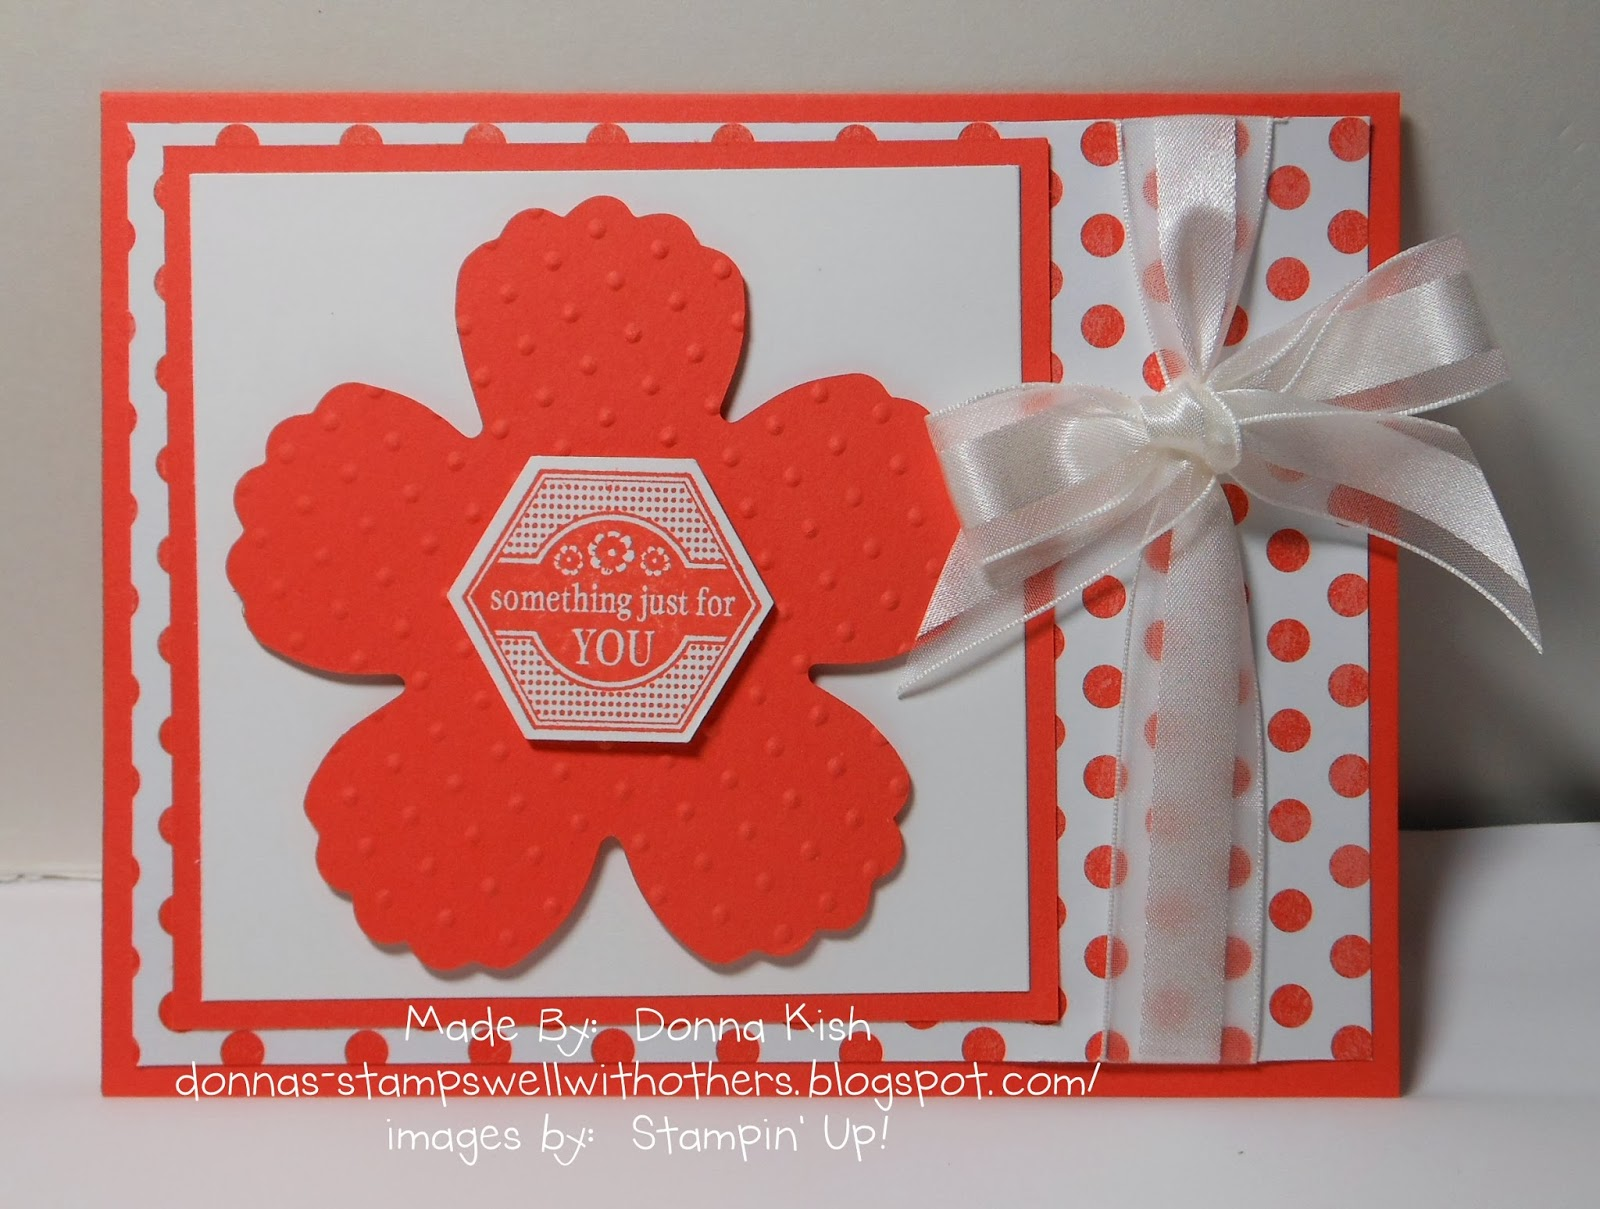 Stamps Well With Others Happy Bosss Day Cards